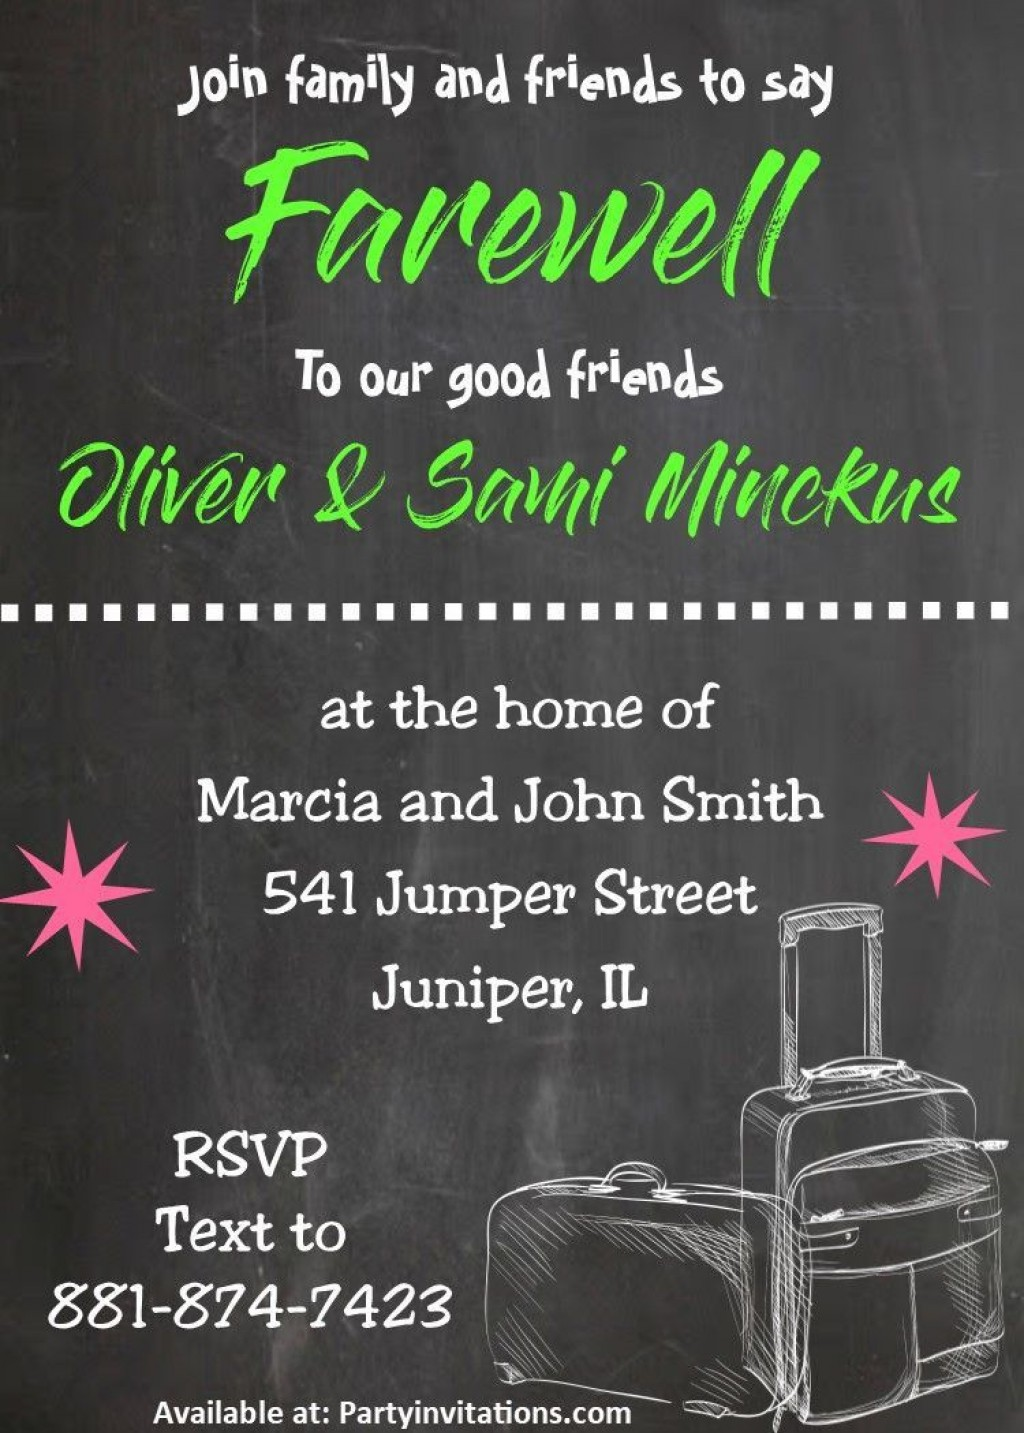 006 Unusual Going Away Party Invitation Template Highest Quality  Free PrintableLarge